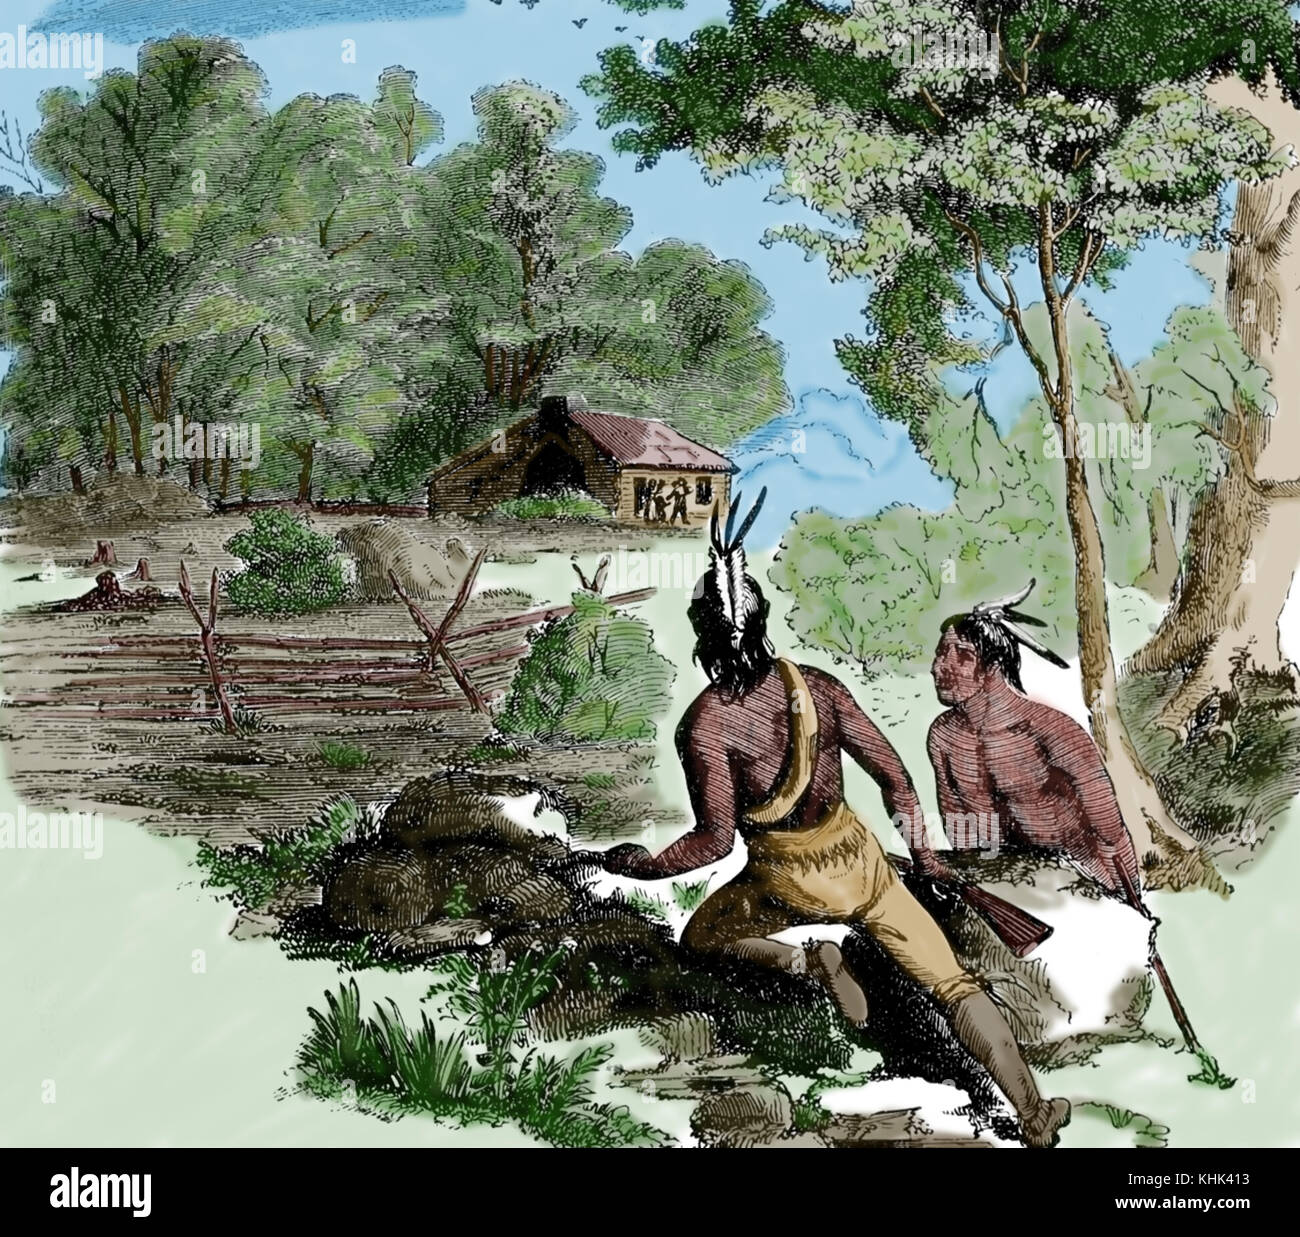 european colonization in early americas European colonization of the americas started with the discovery of america by columbus in 1492however, about 500 years before colombus, the norse had reached america and colonized vinland.